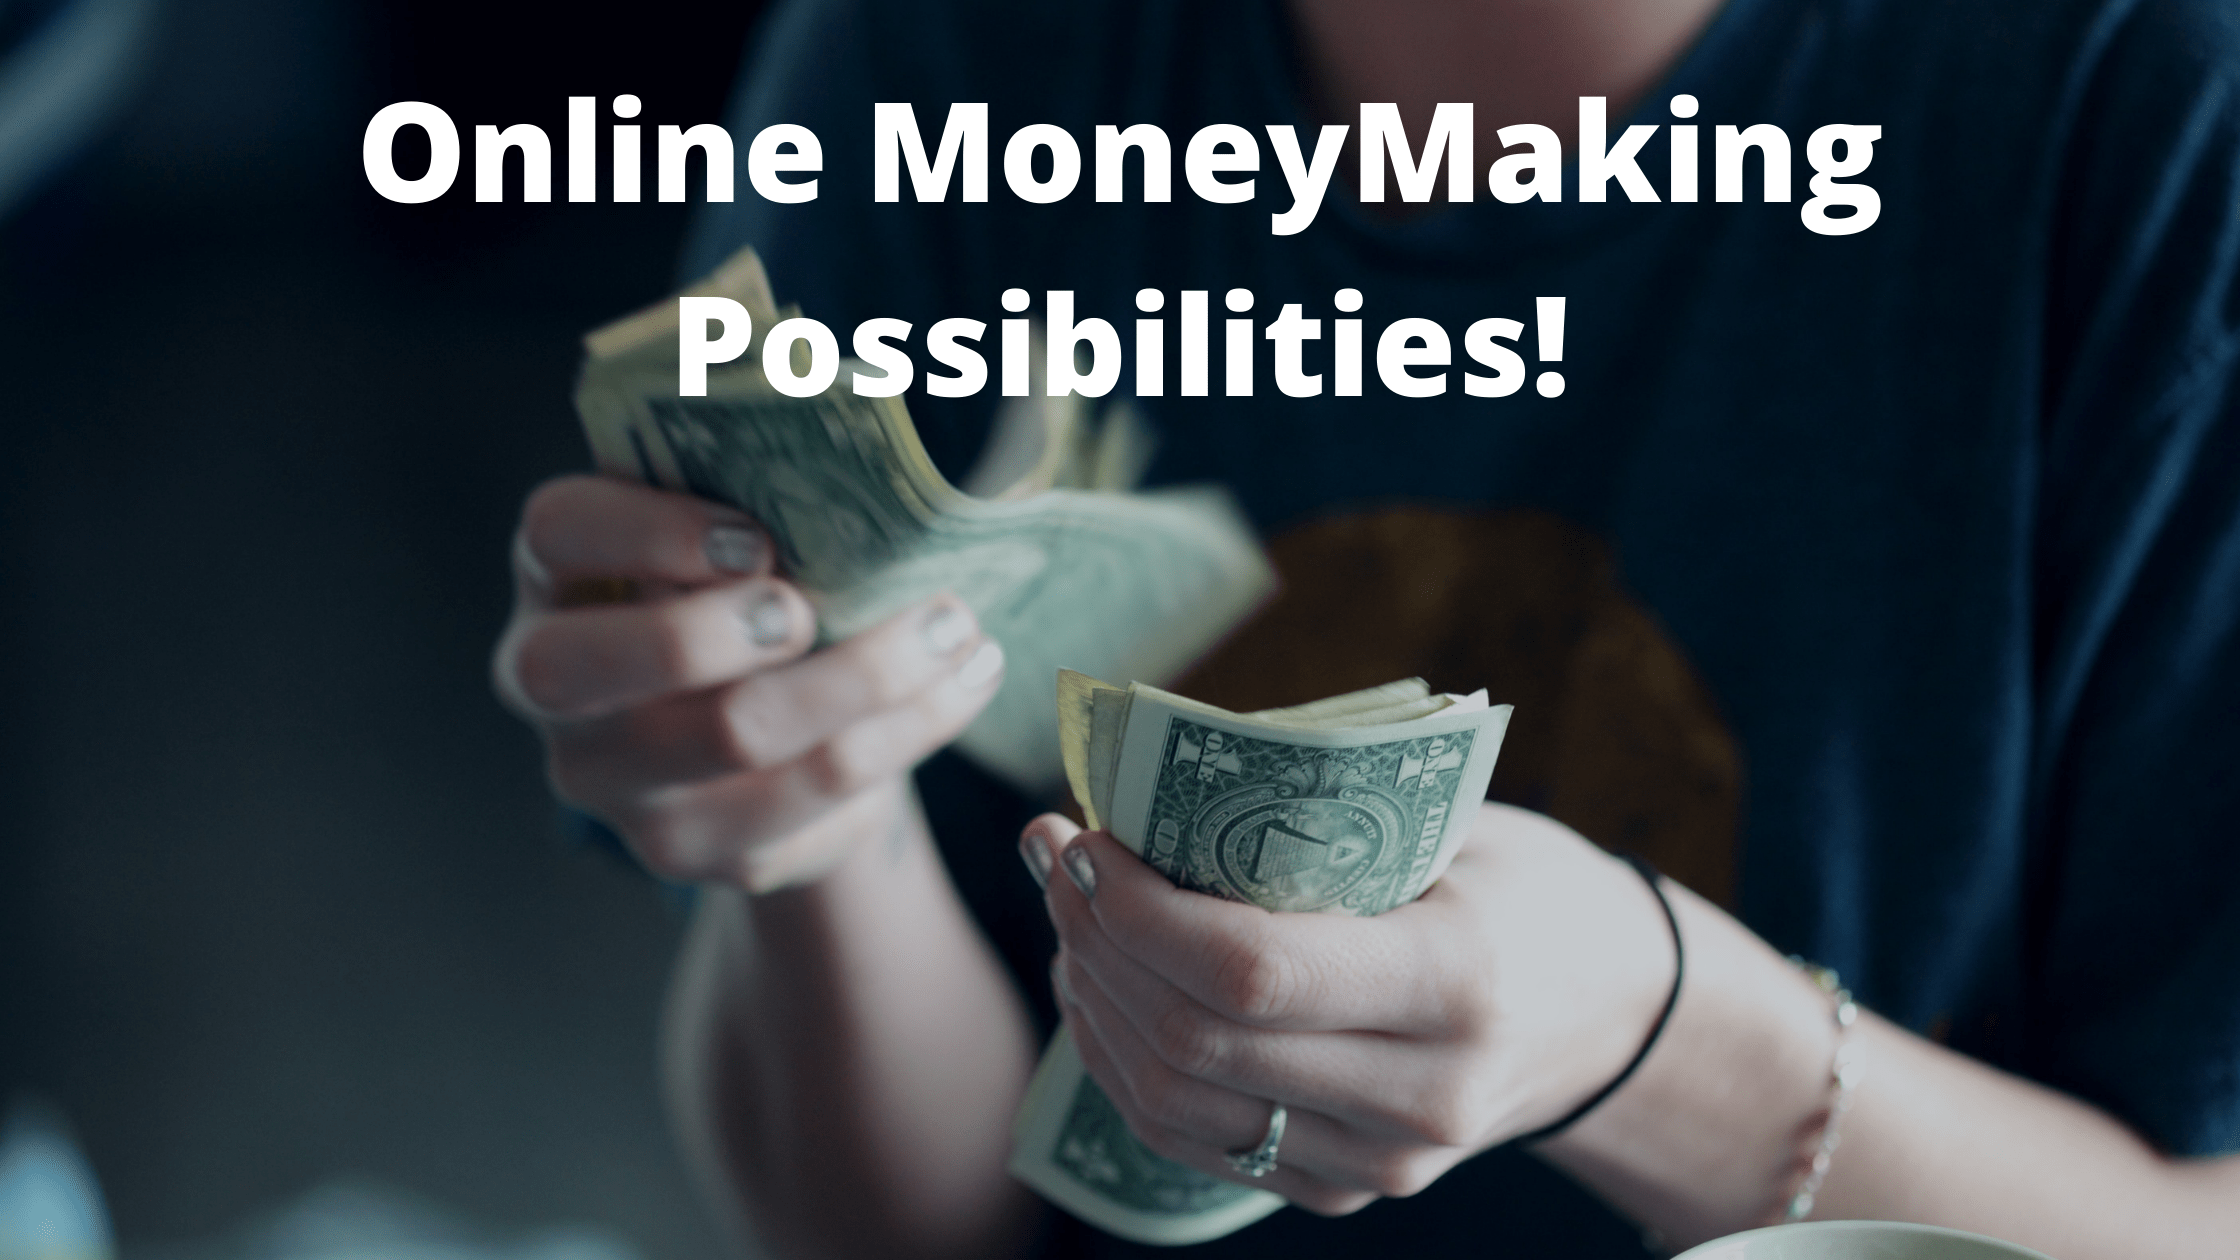 There Are Countless Online Money-Making Possibilities!